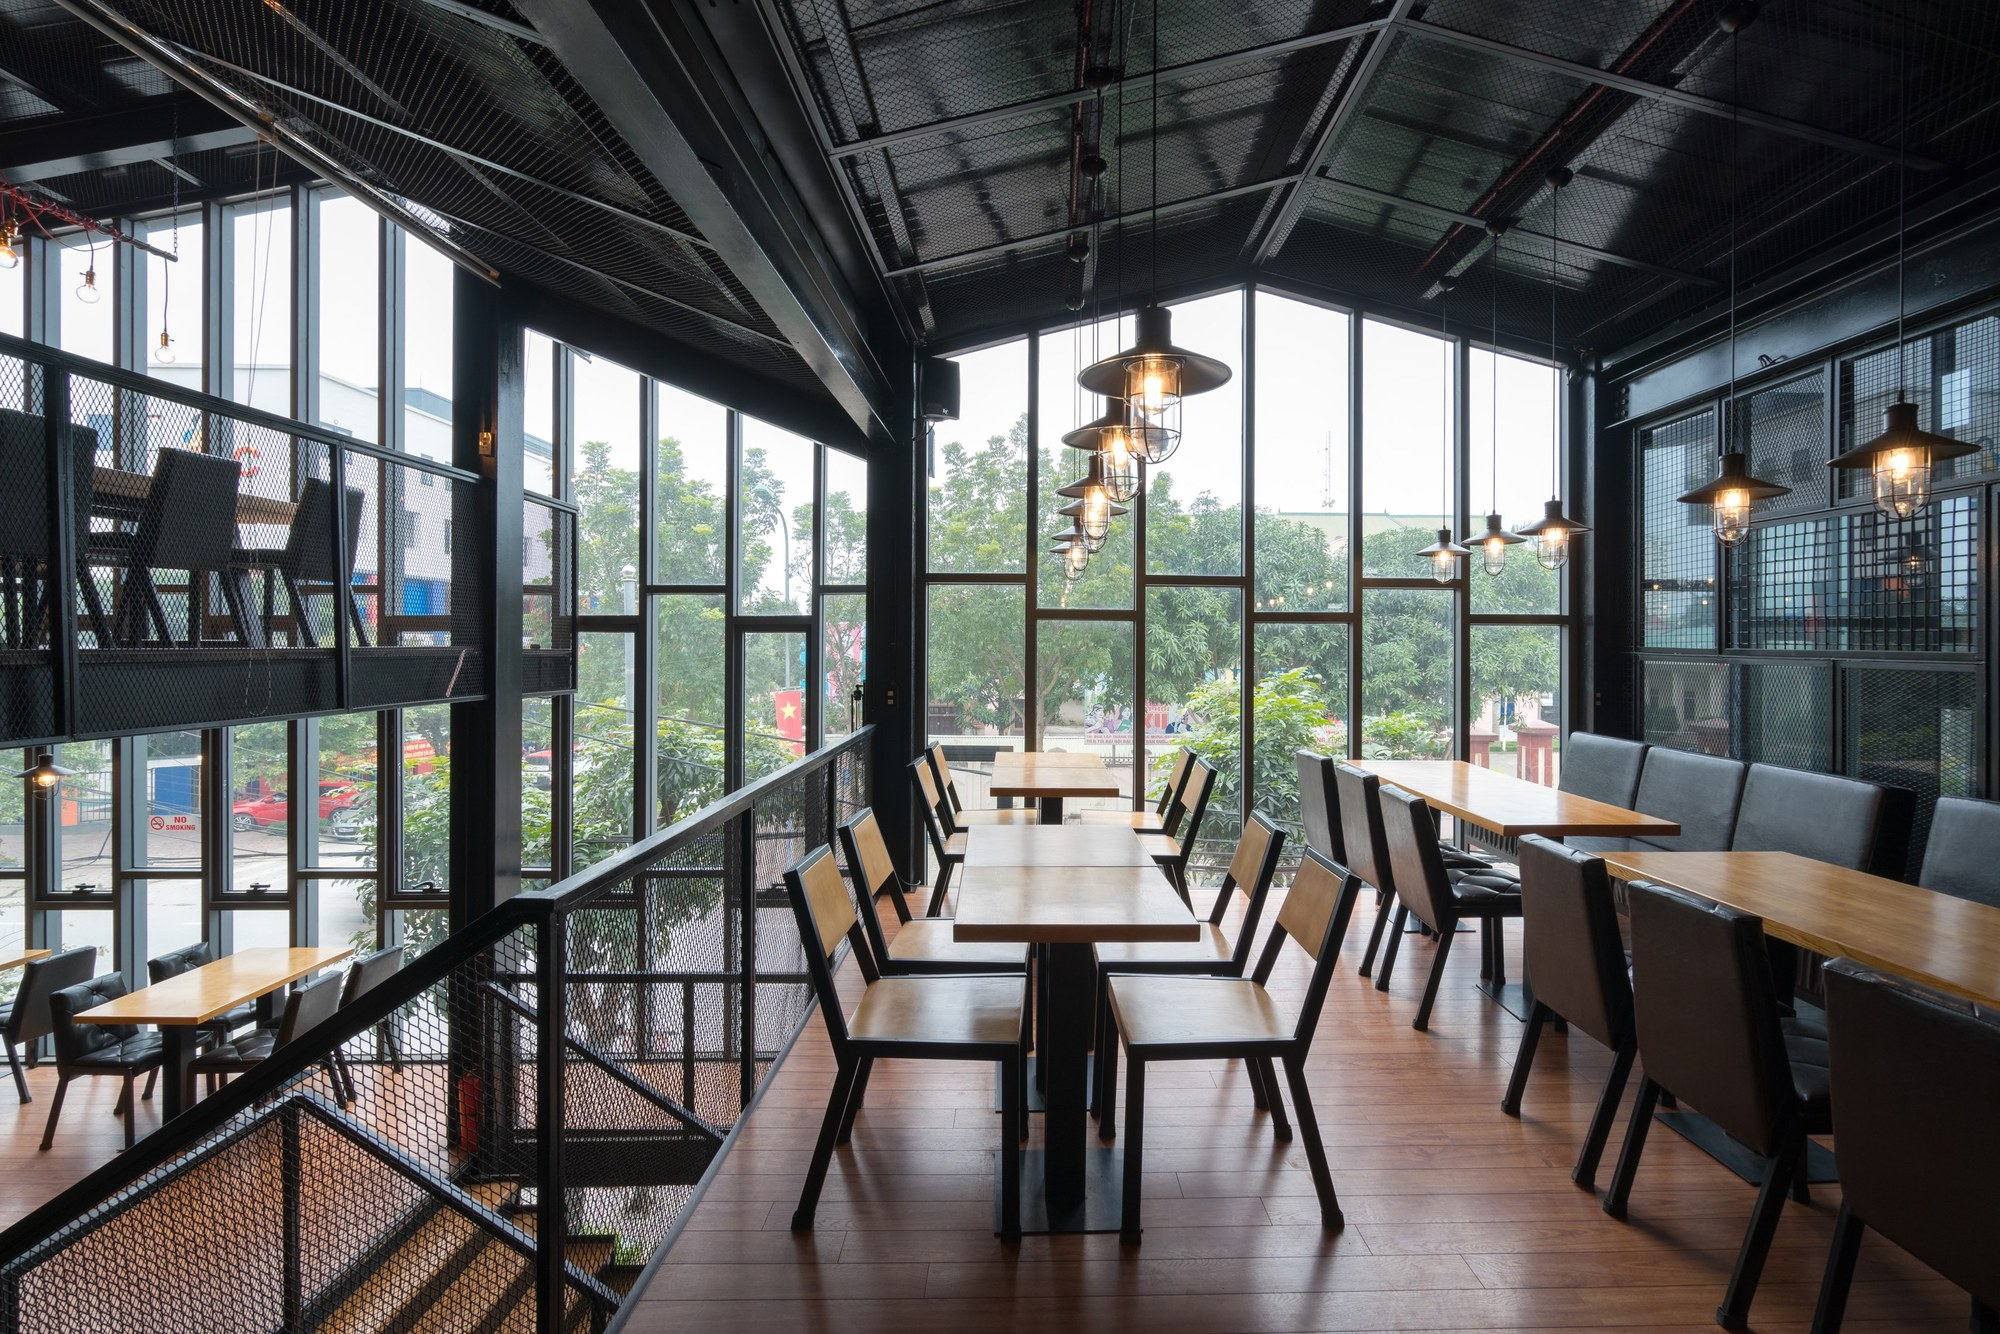 Fine Architecture Design Restaurant Hng Crabsark Crawfish And Inspiration